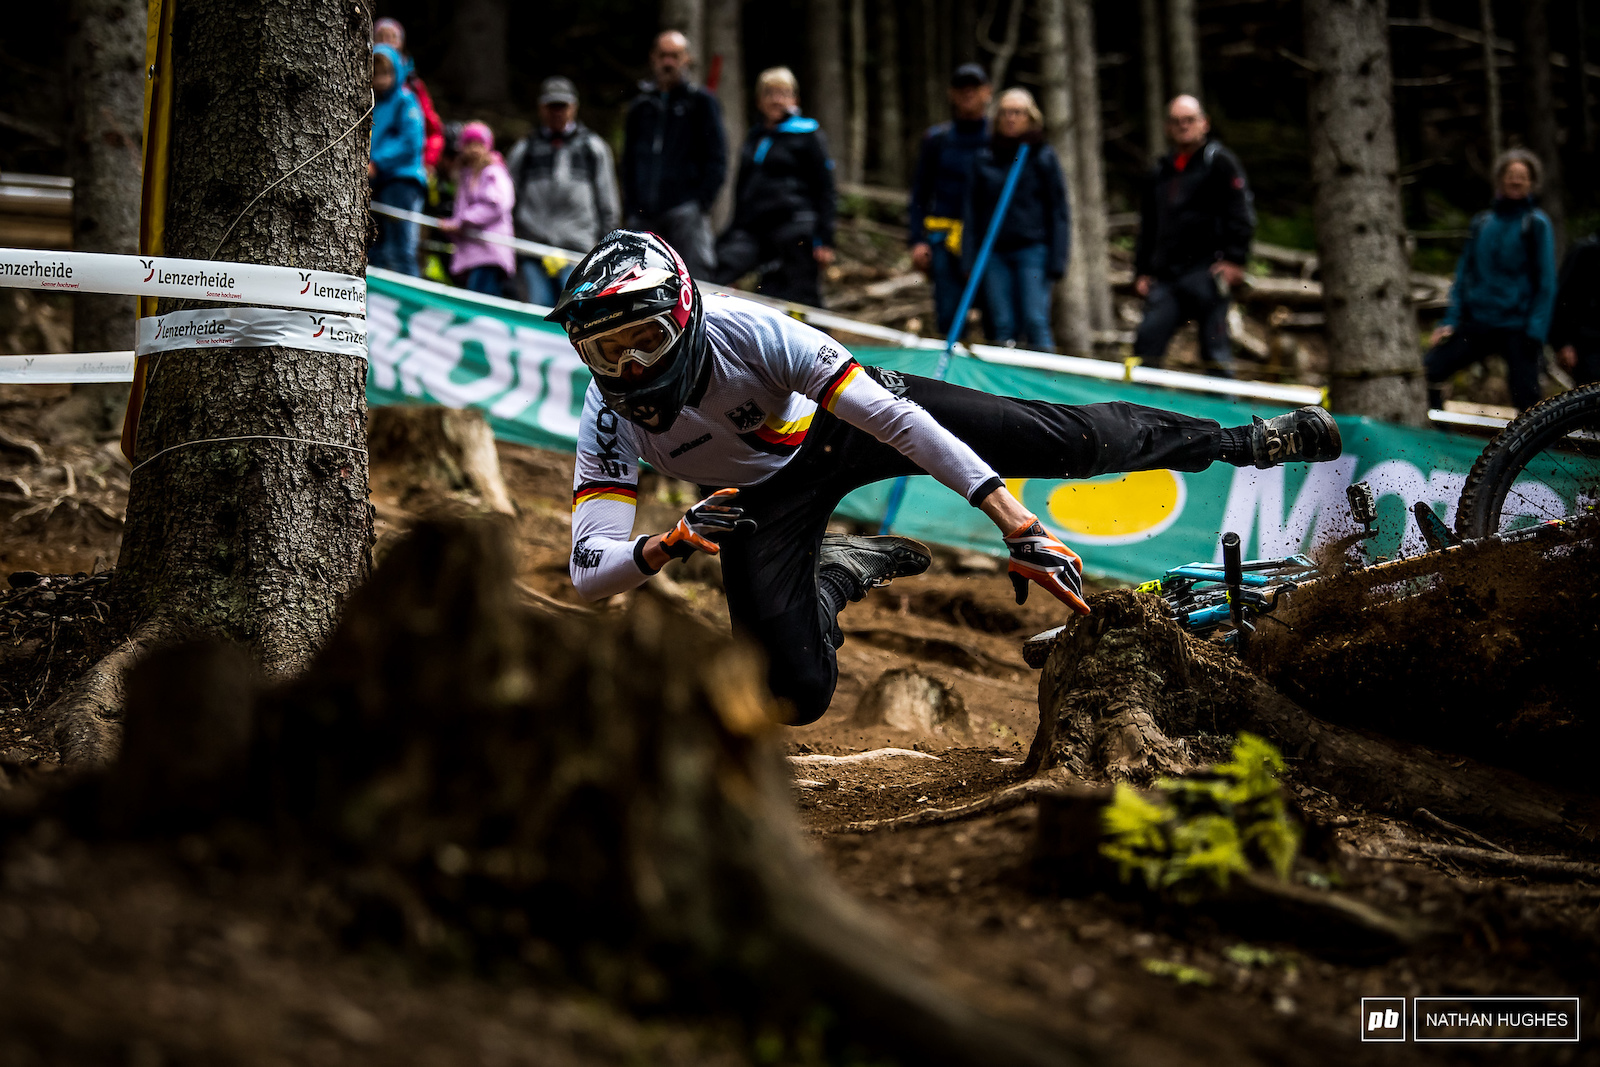 IXS Cup overall winner Joshua Barth bites the dust in the depths of the forest.